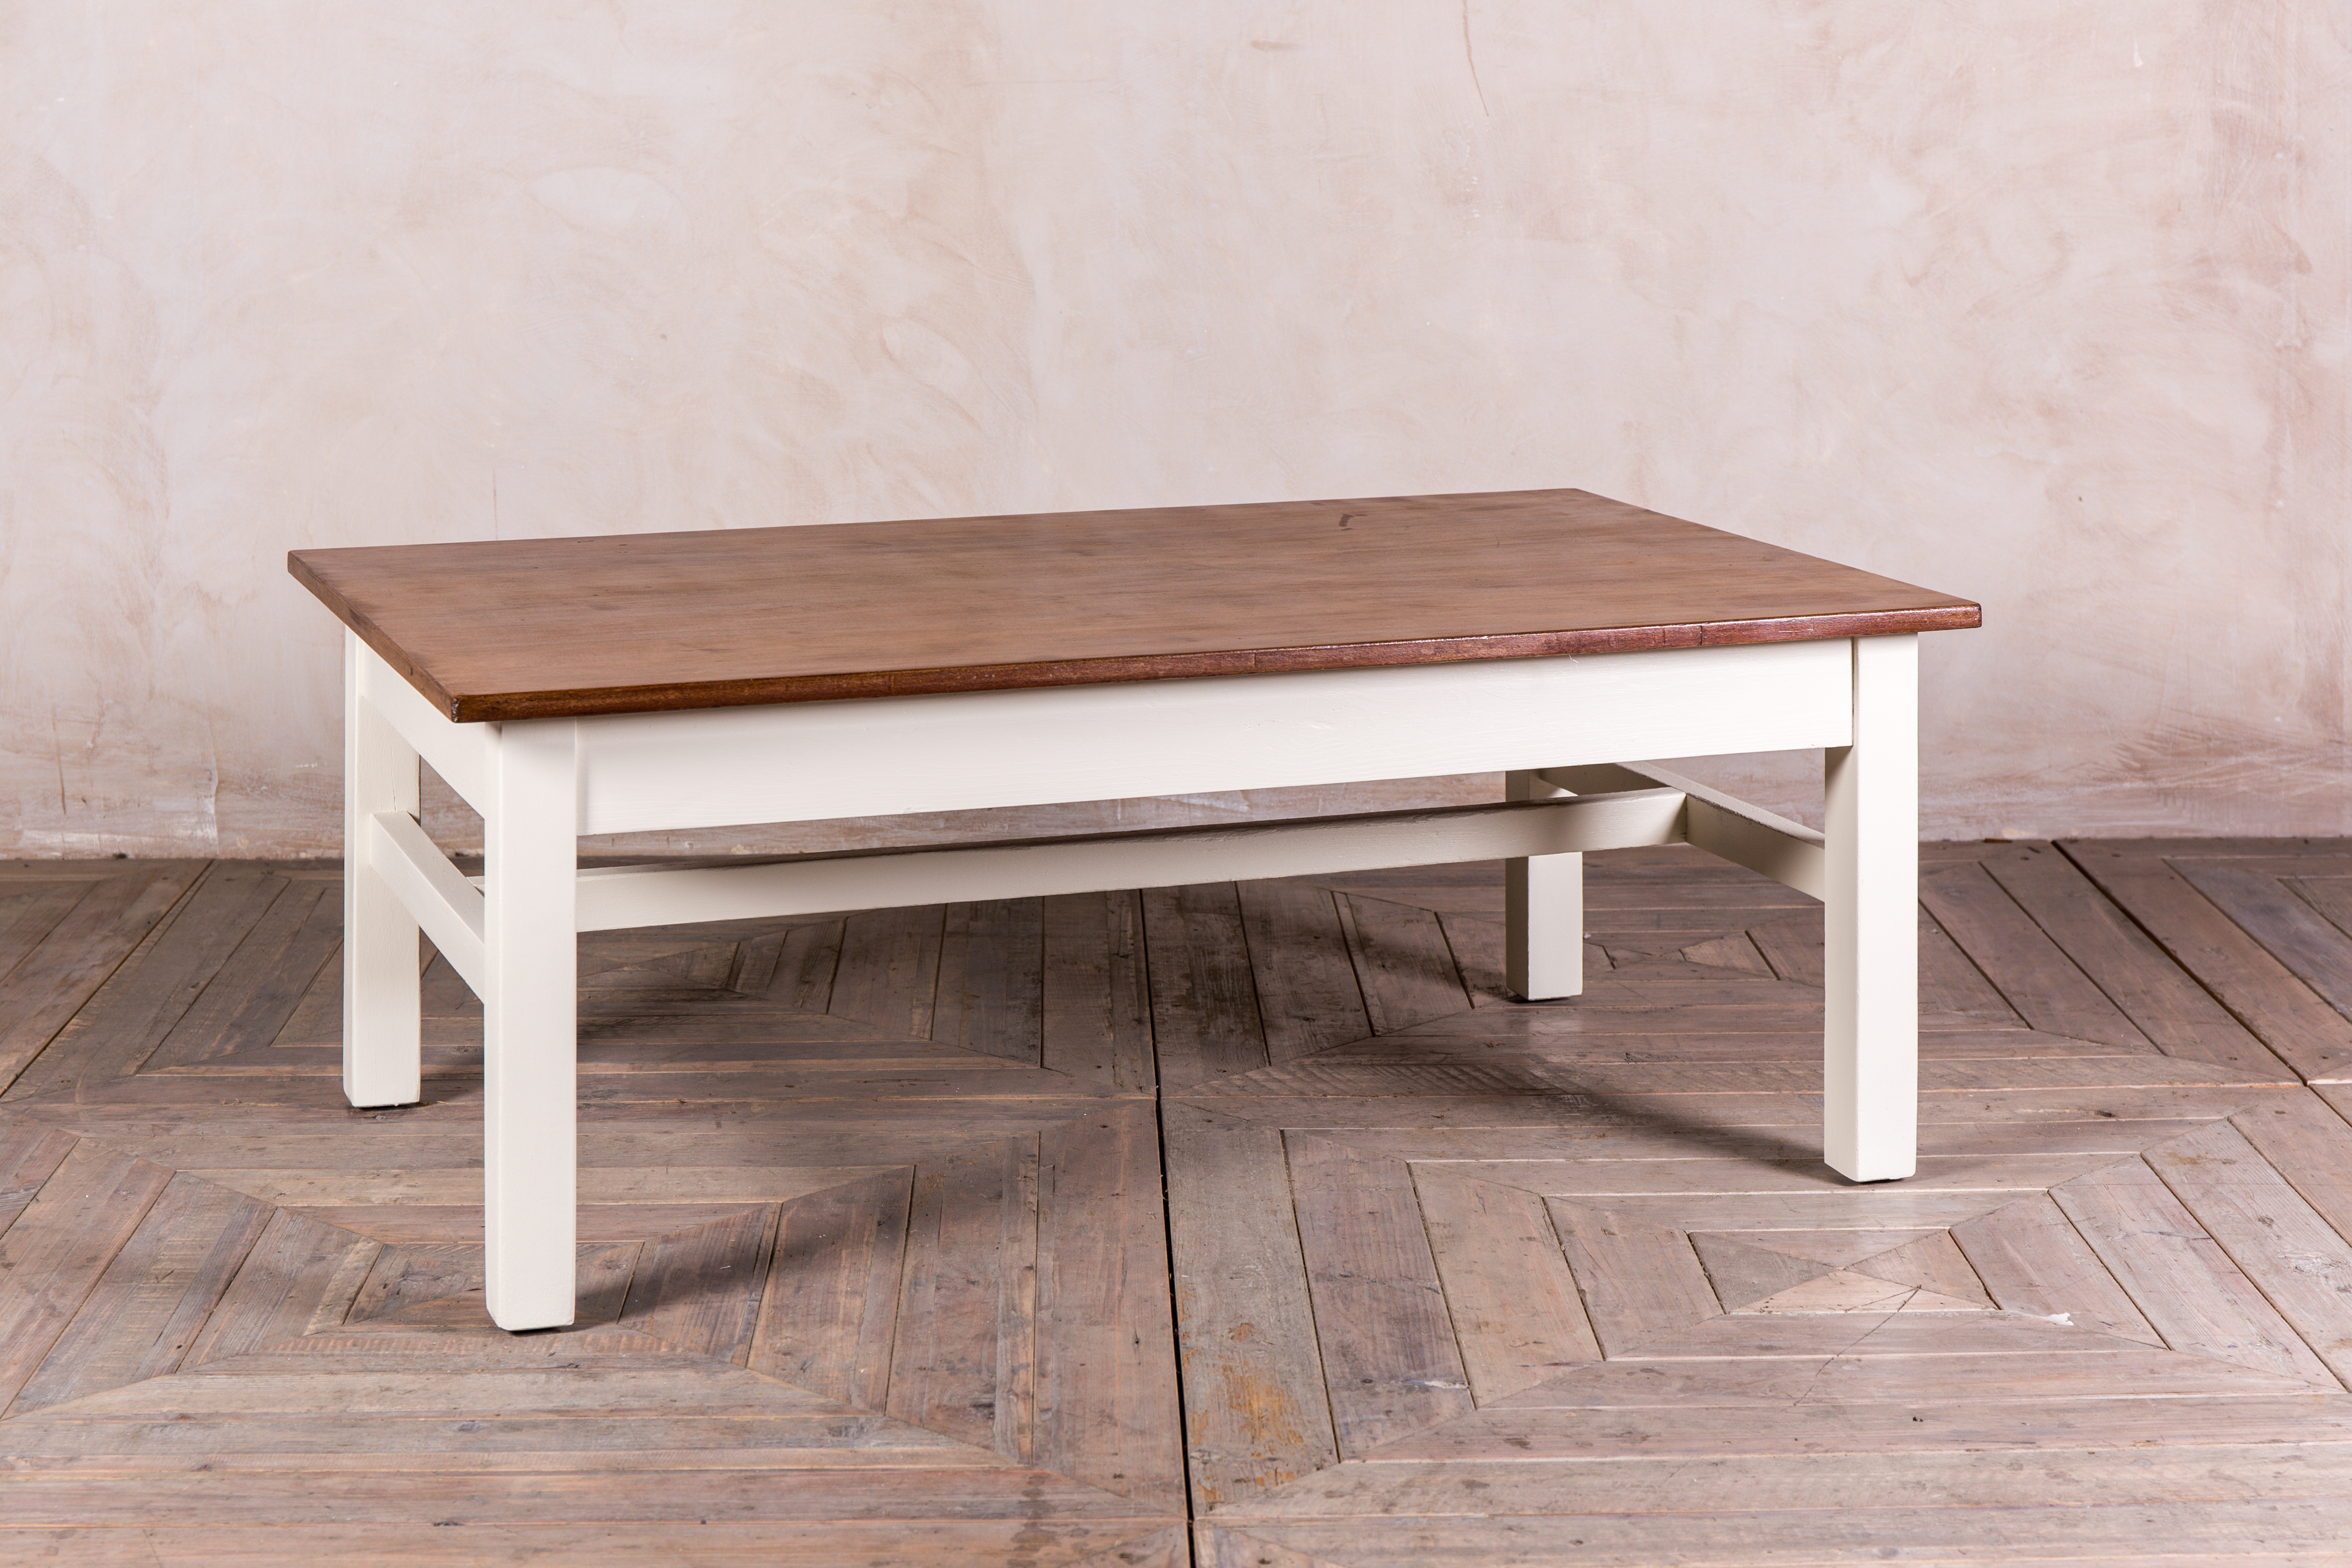 1.22m Refurbished Coffee Table